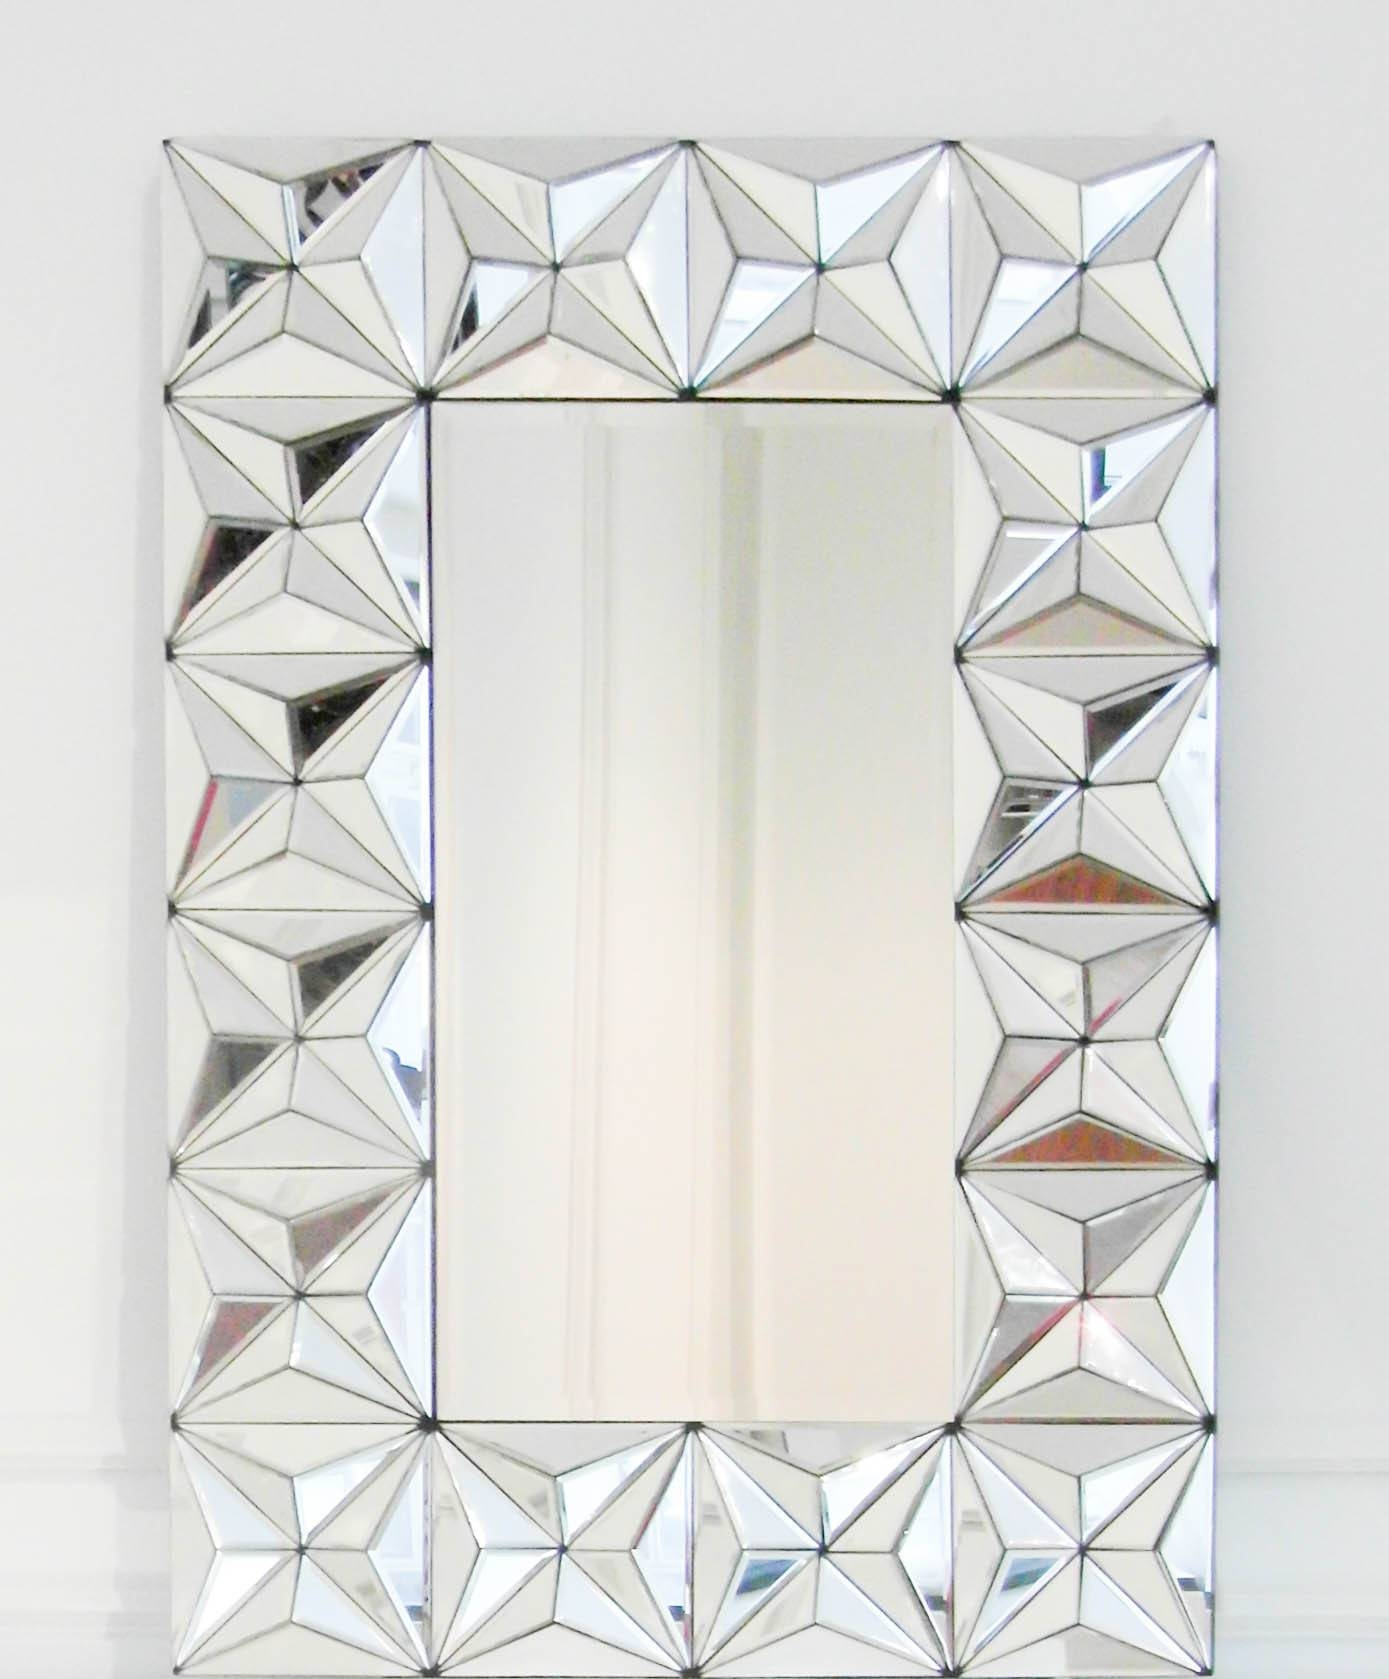 Interior: Vintage Venetian Mirror For Classic Interior Decor within Extra Large Sunburst Mirrors (Image 15 of 25)